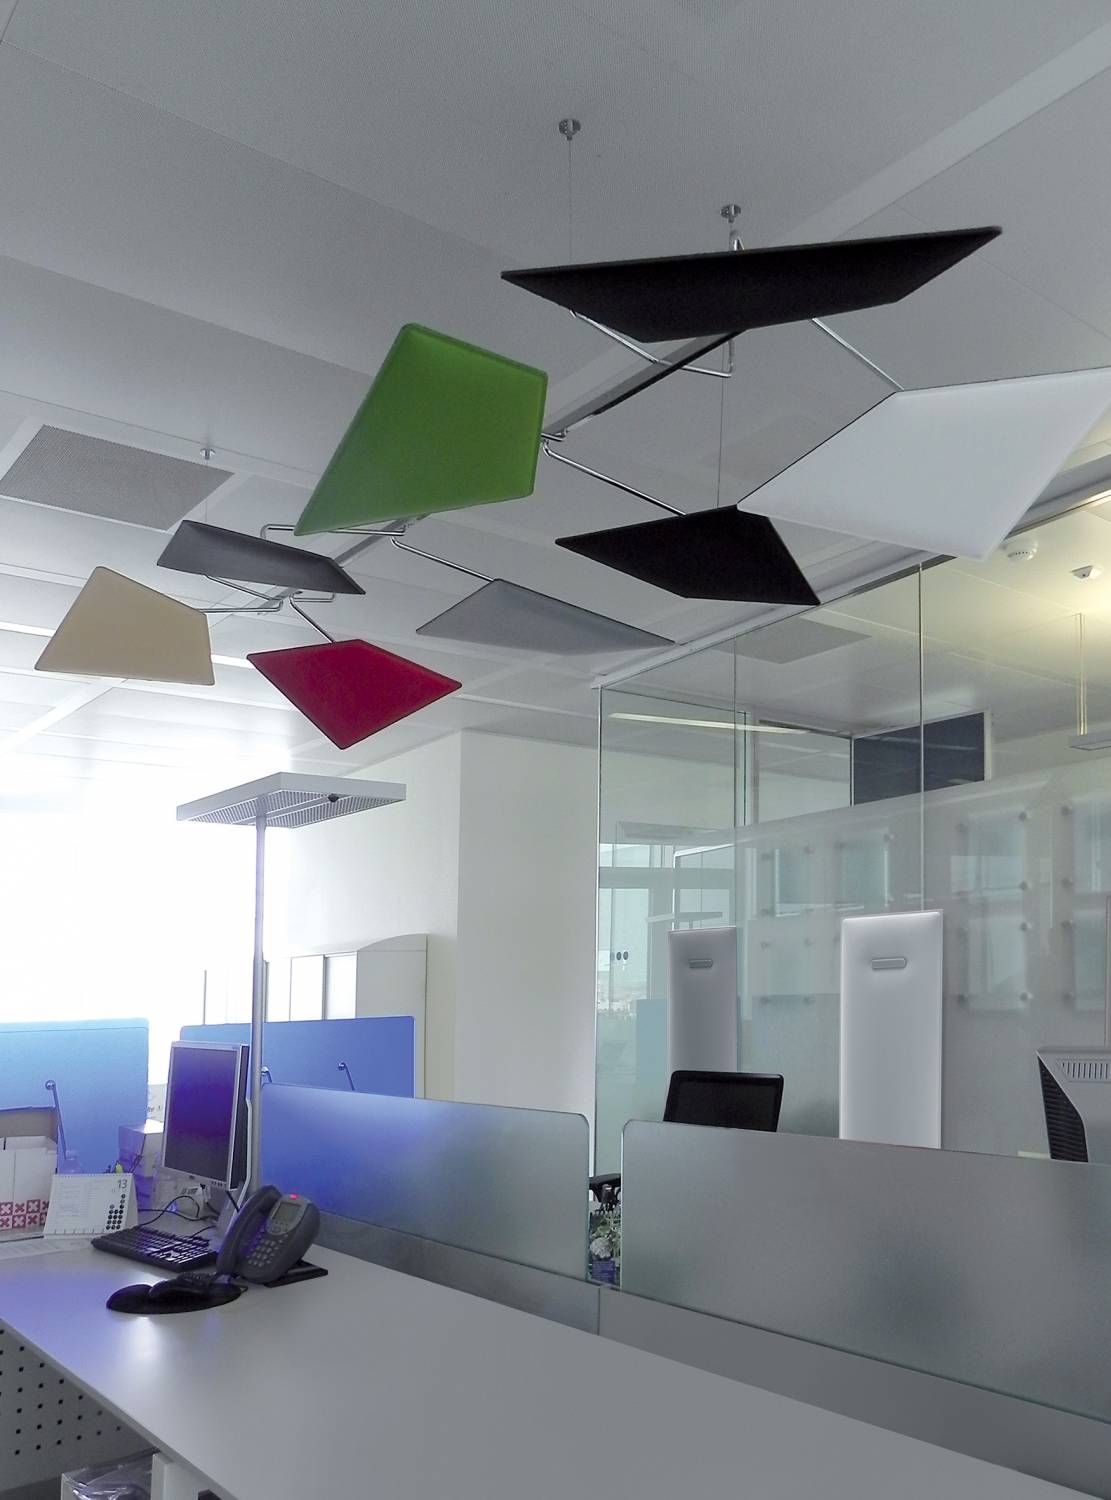 Flap-Ceiling-Mounted-Suspended-Acoustic-Panels-with-Adjustable-Hinges